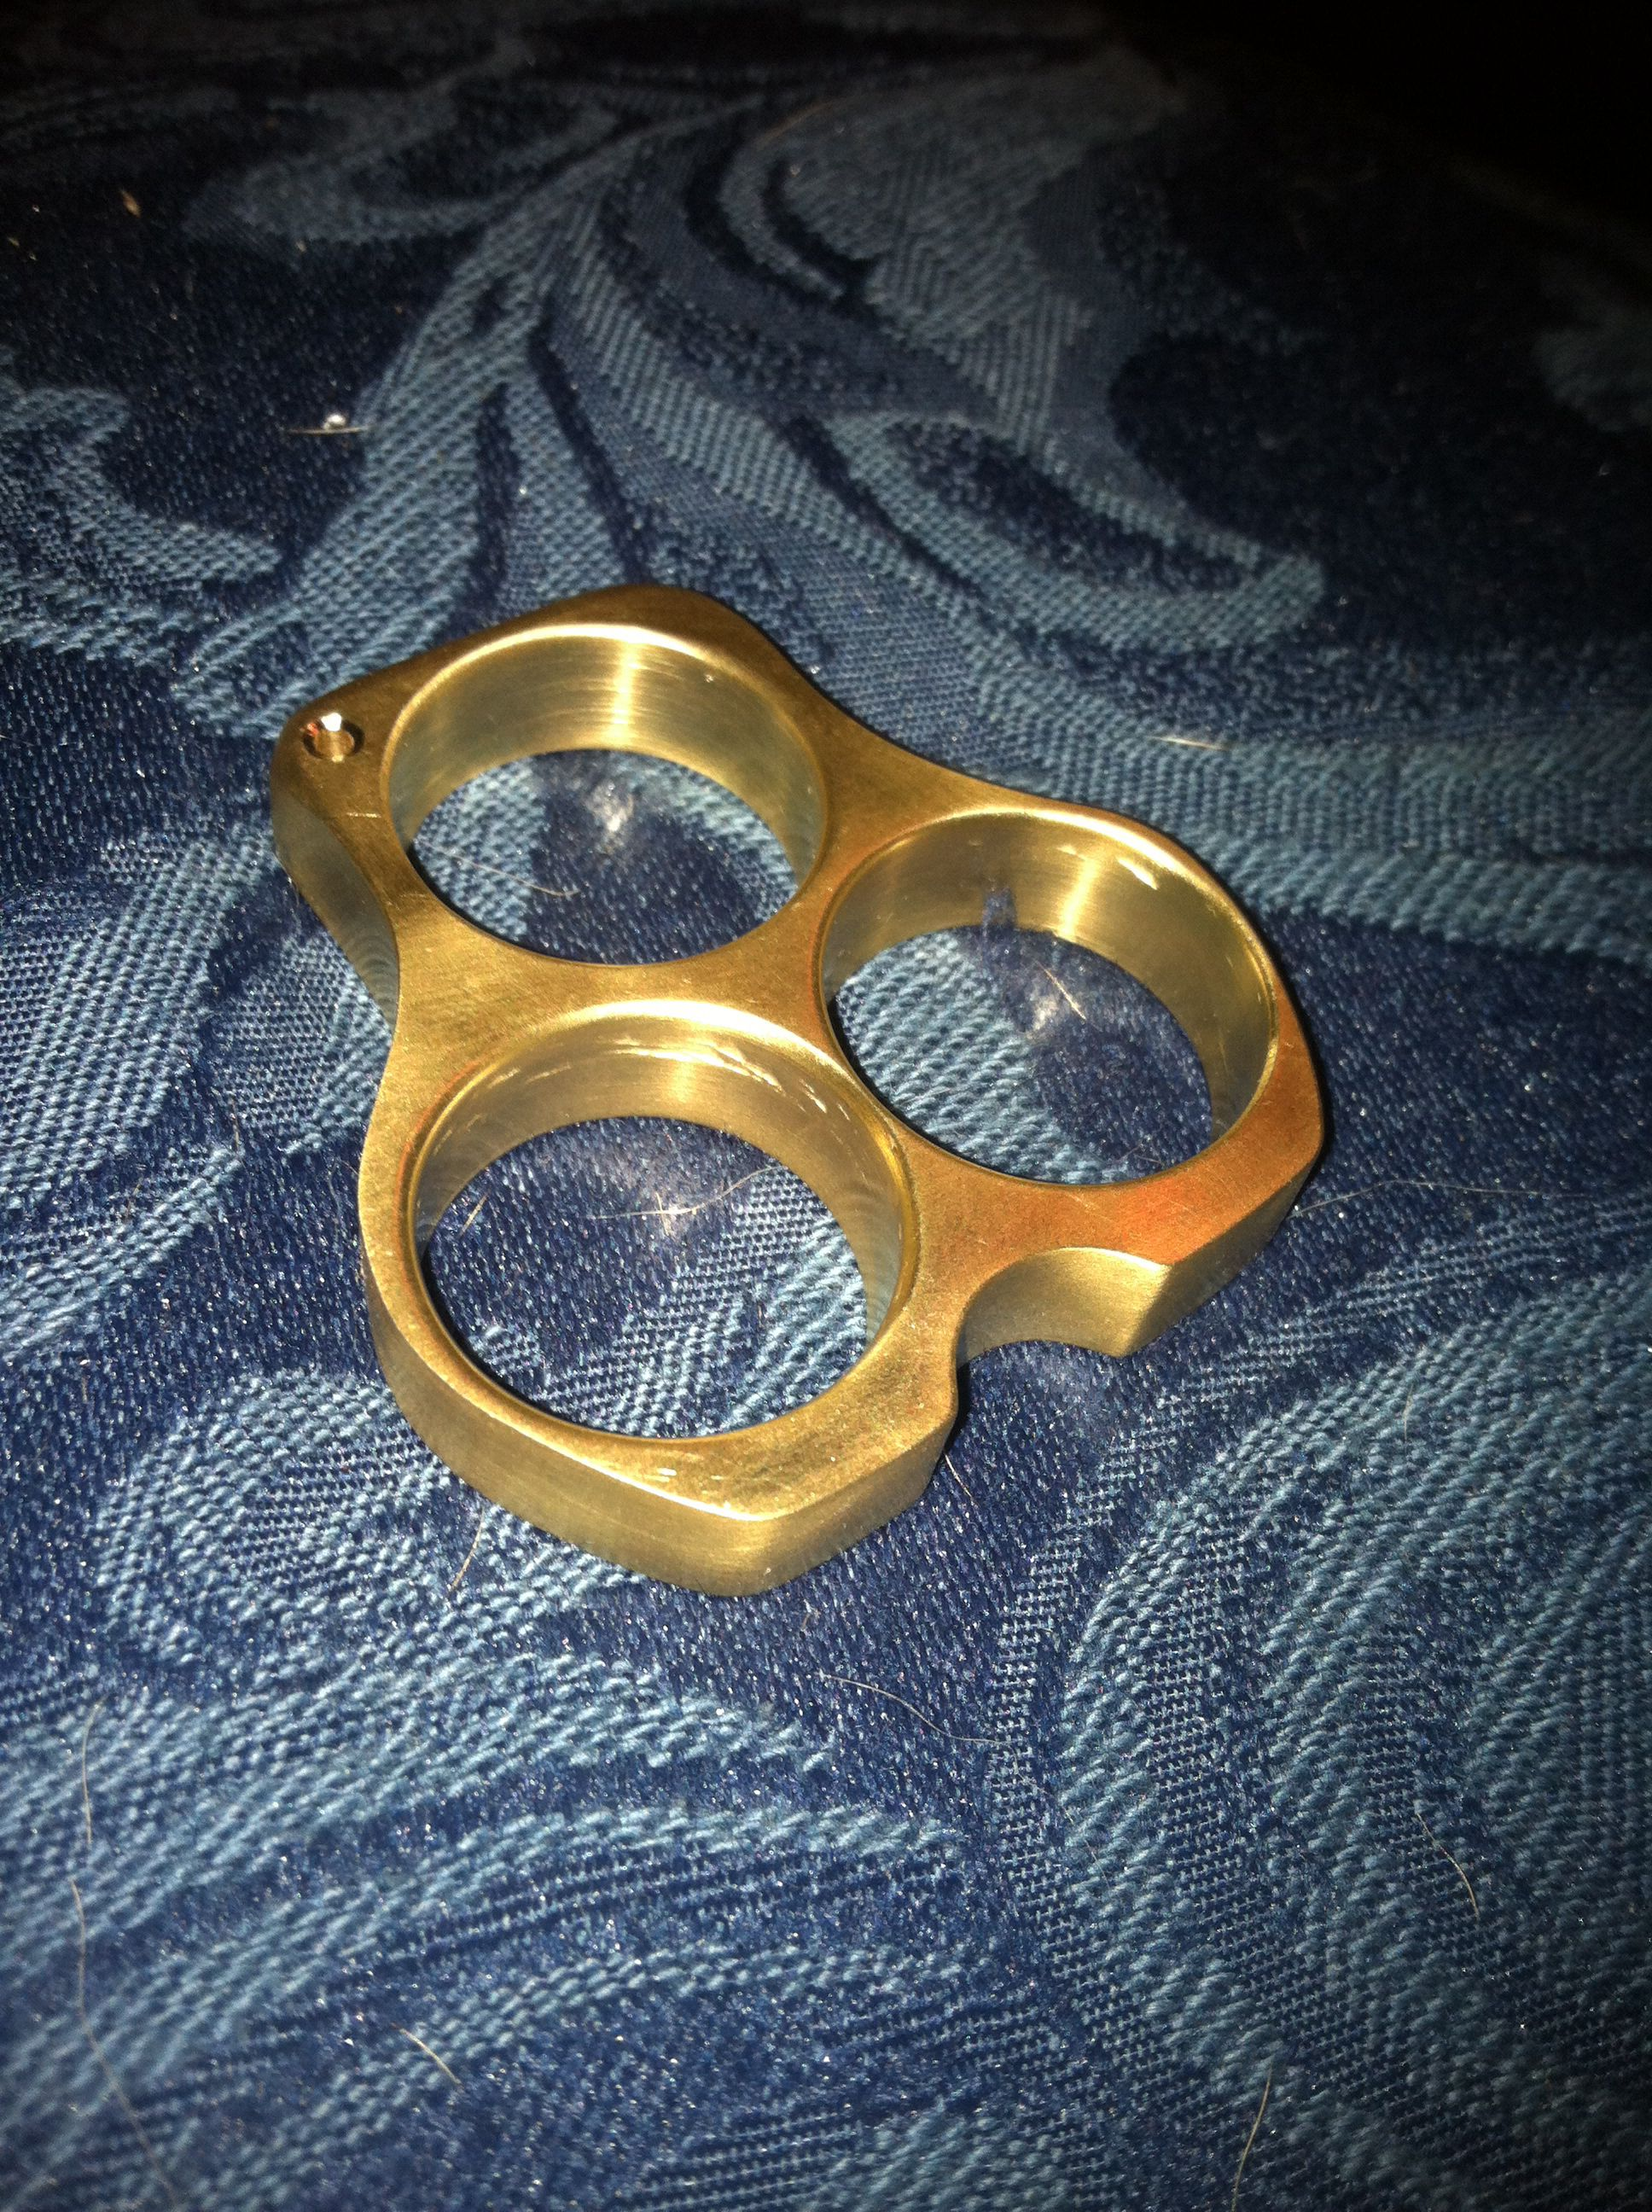 How to wear safely brass knuckles best photo